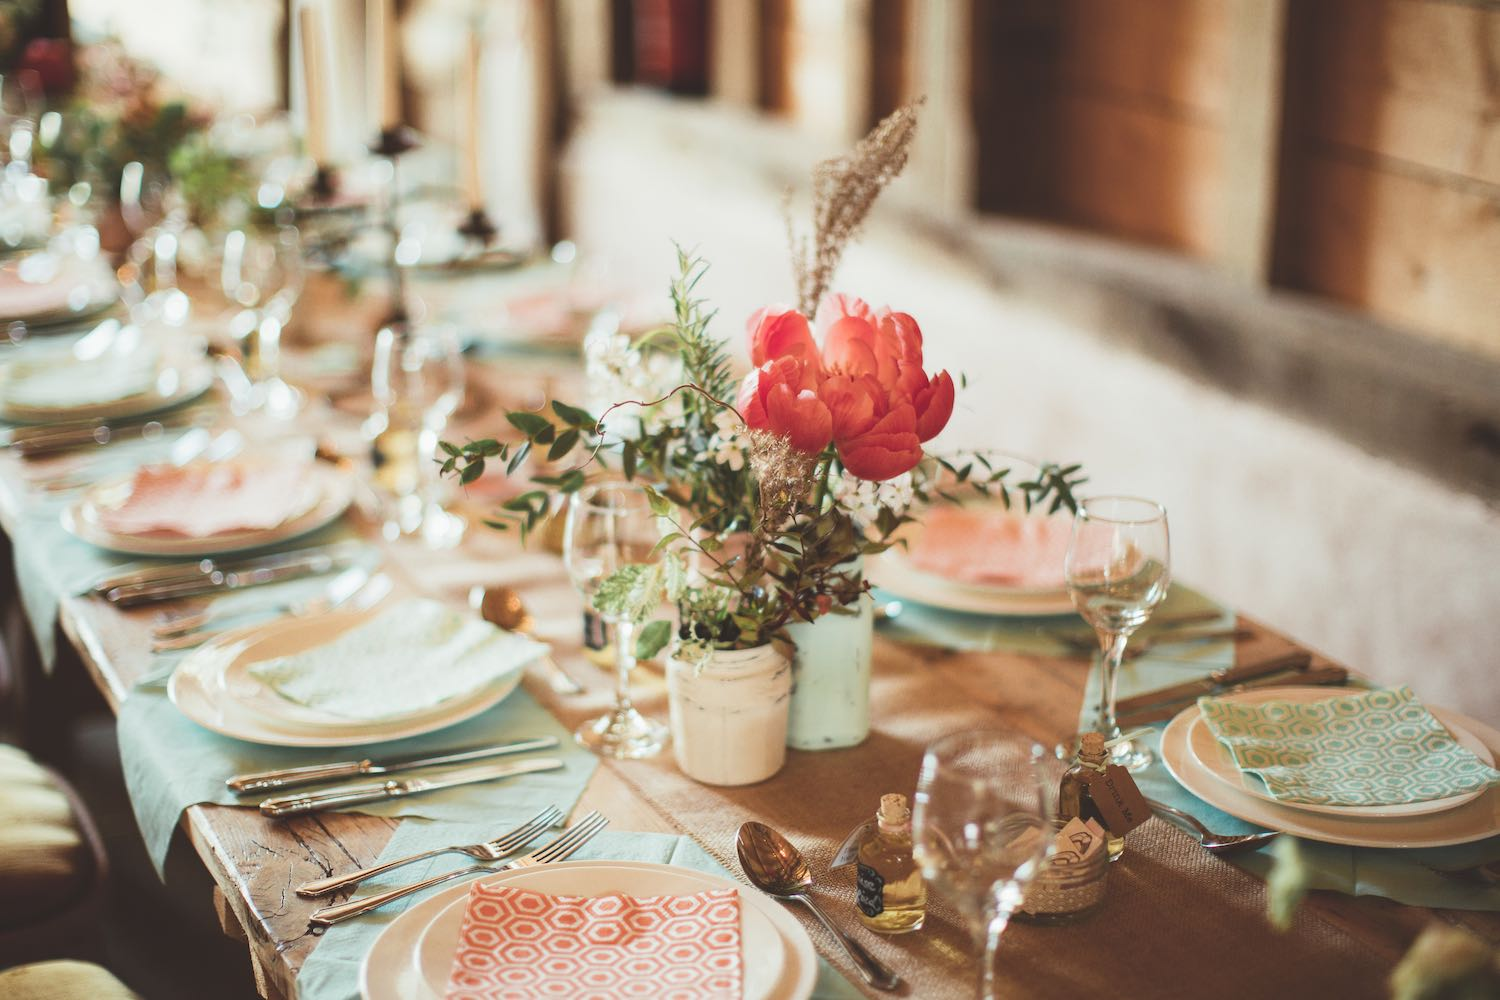 Pastel wedding table setting with jam jar flowers